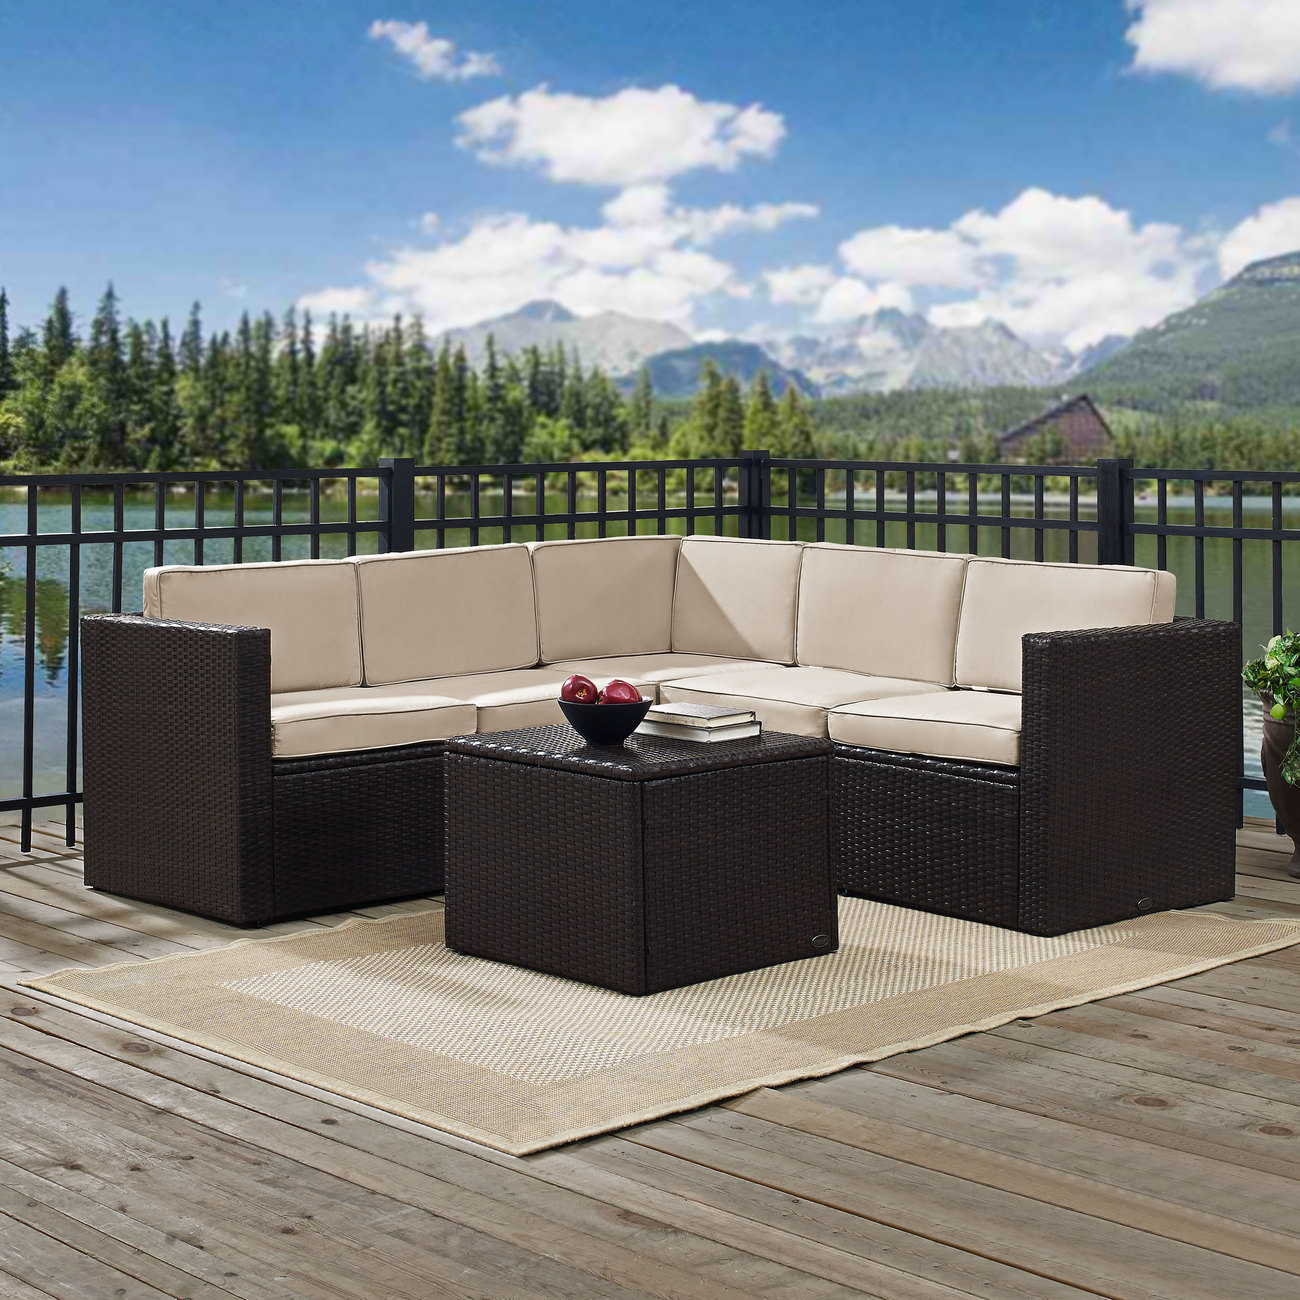 Outdoor Wicker Seating Set Sand Cushions Three Corner Chairs Two Center Chairs Coffee Sectional Table